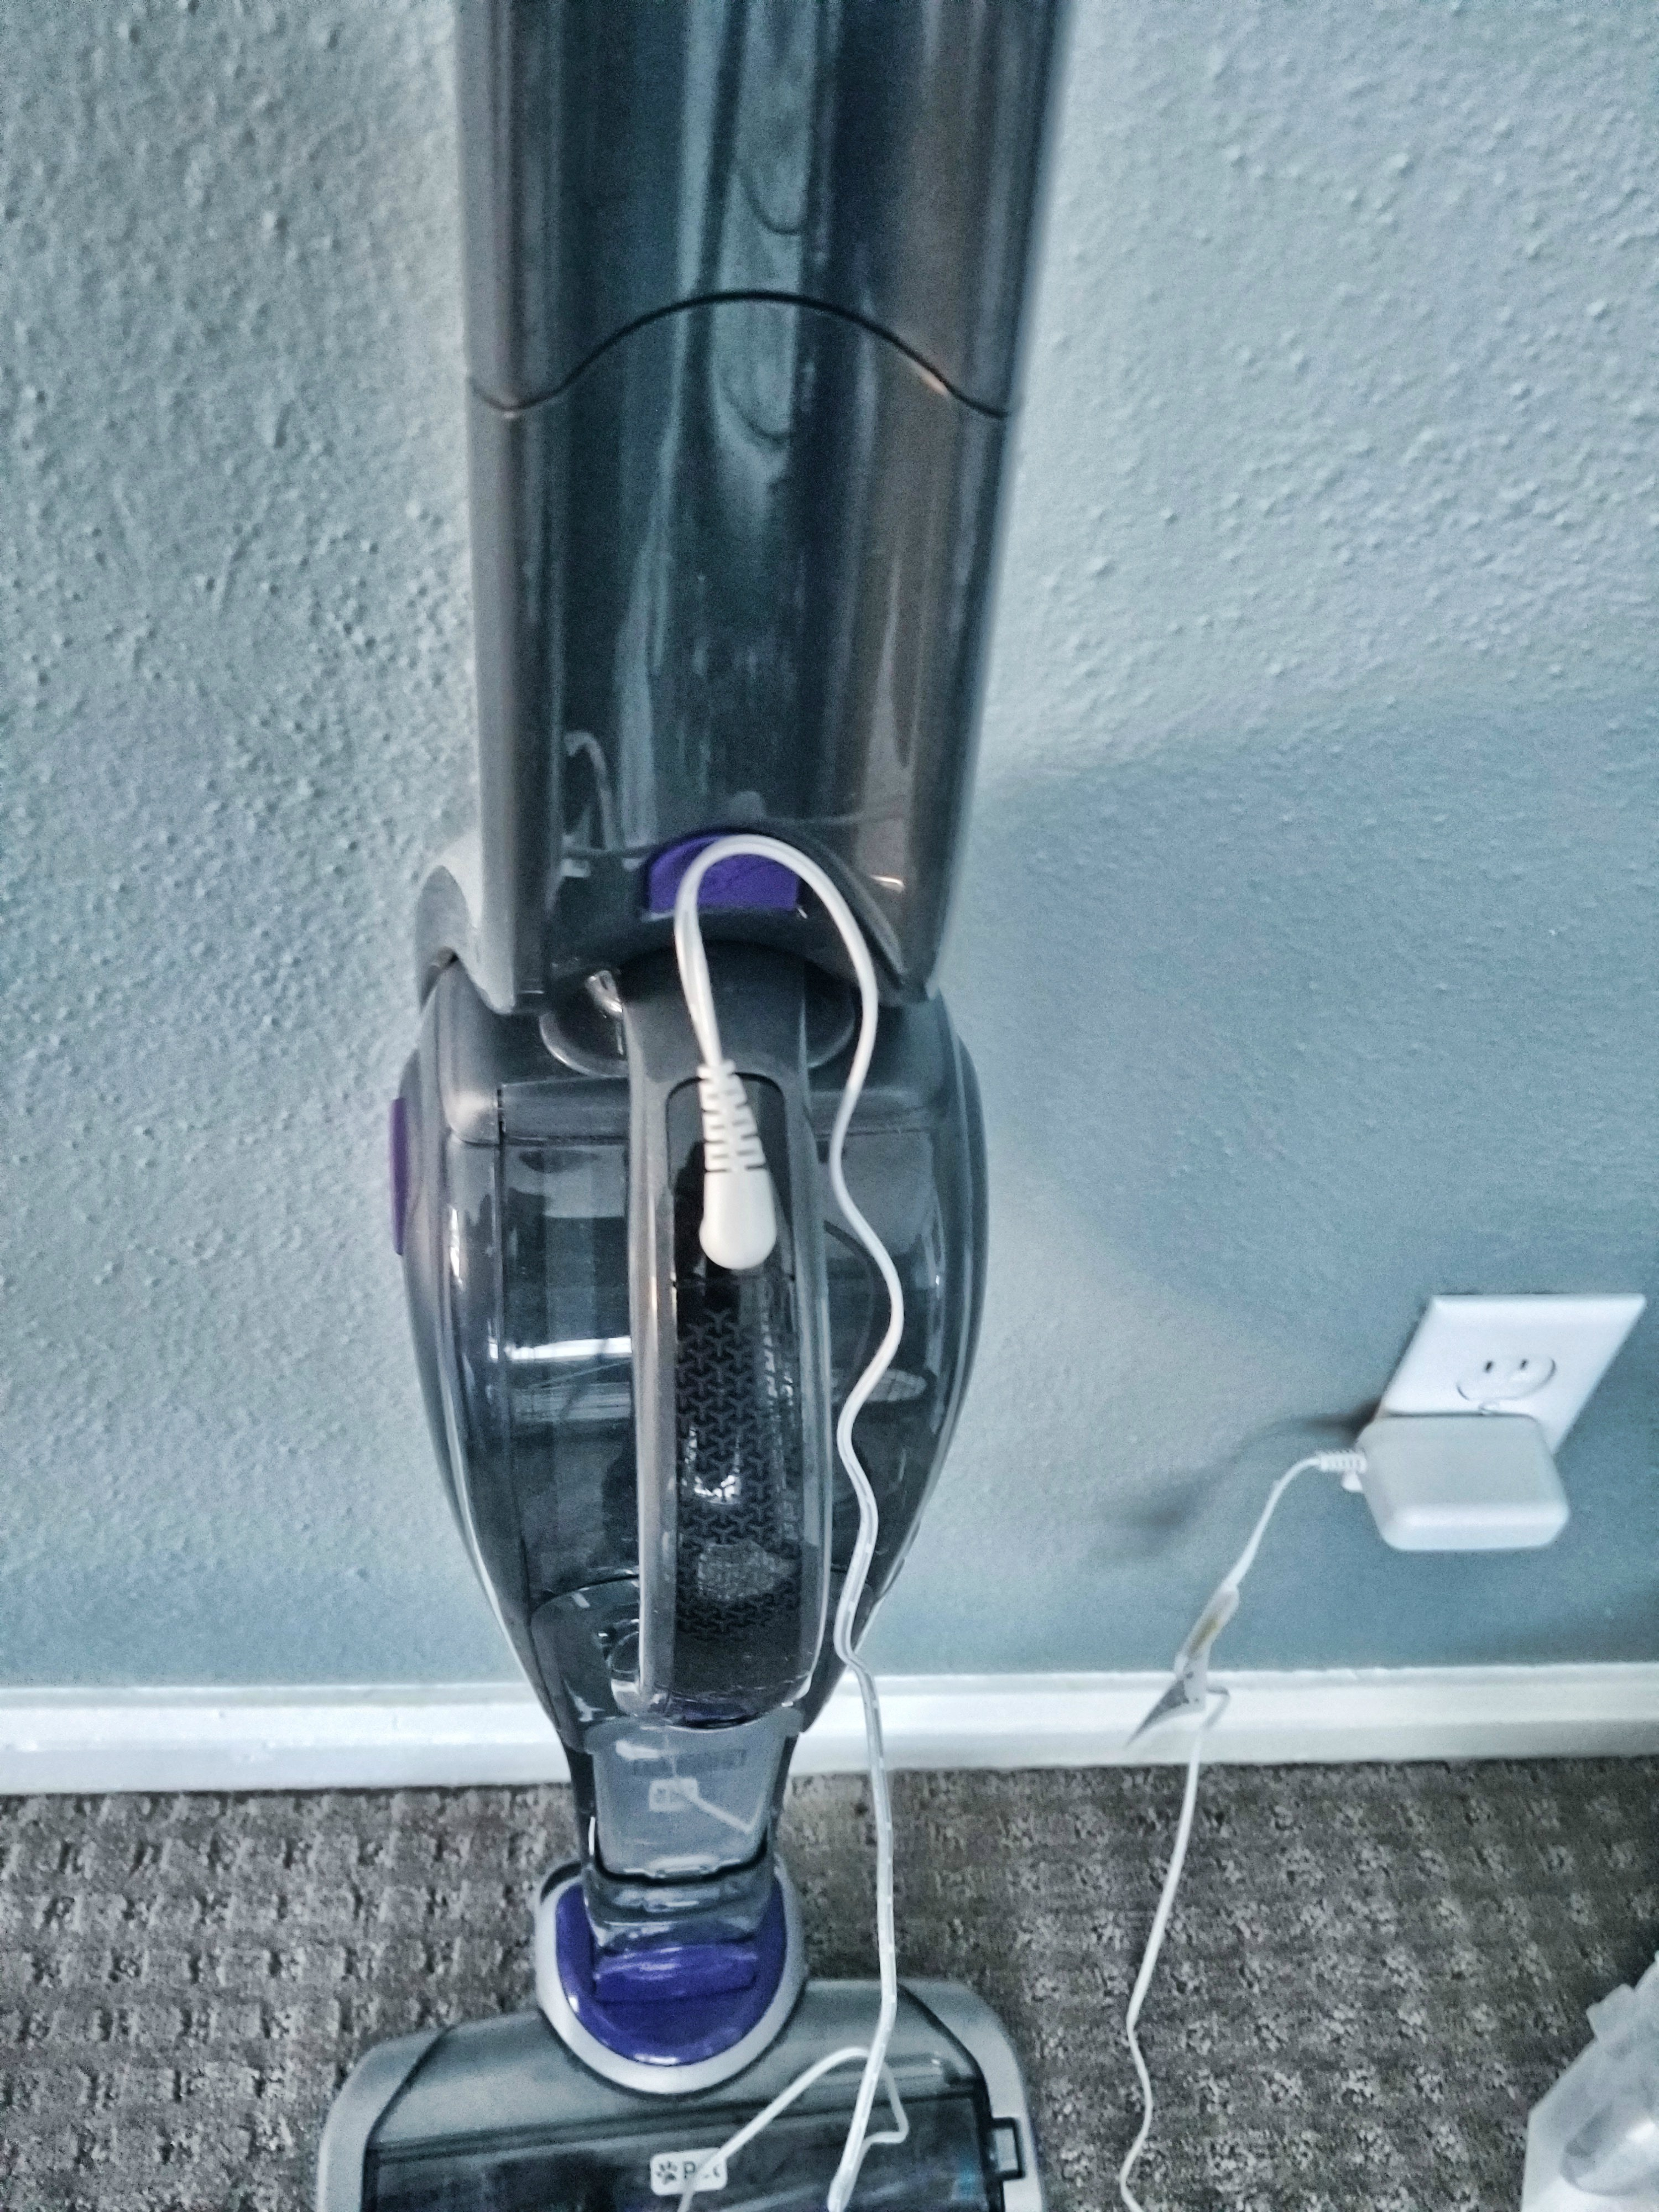 Best Vacuum For Hardwood Floors